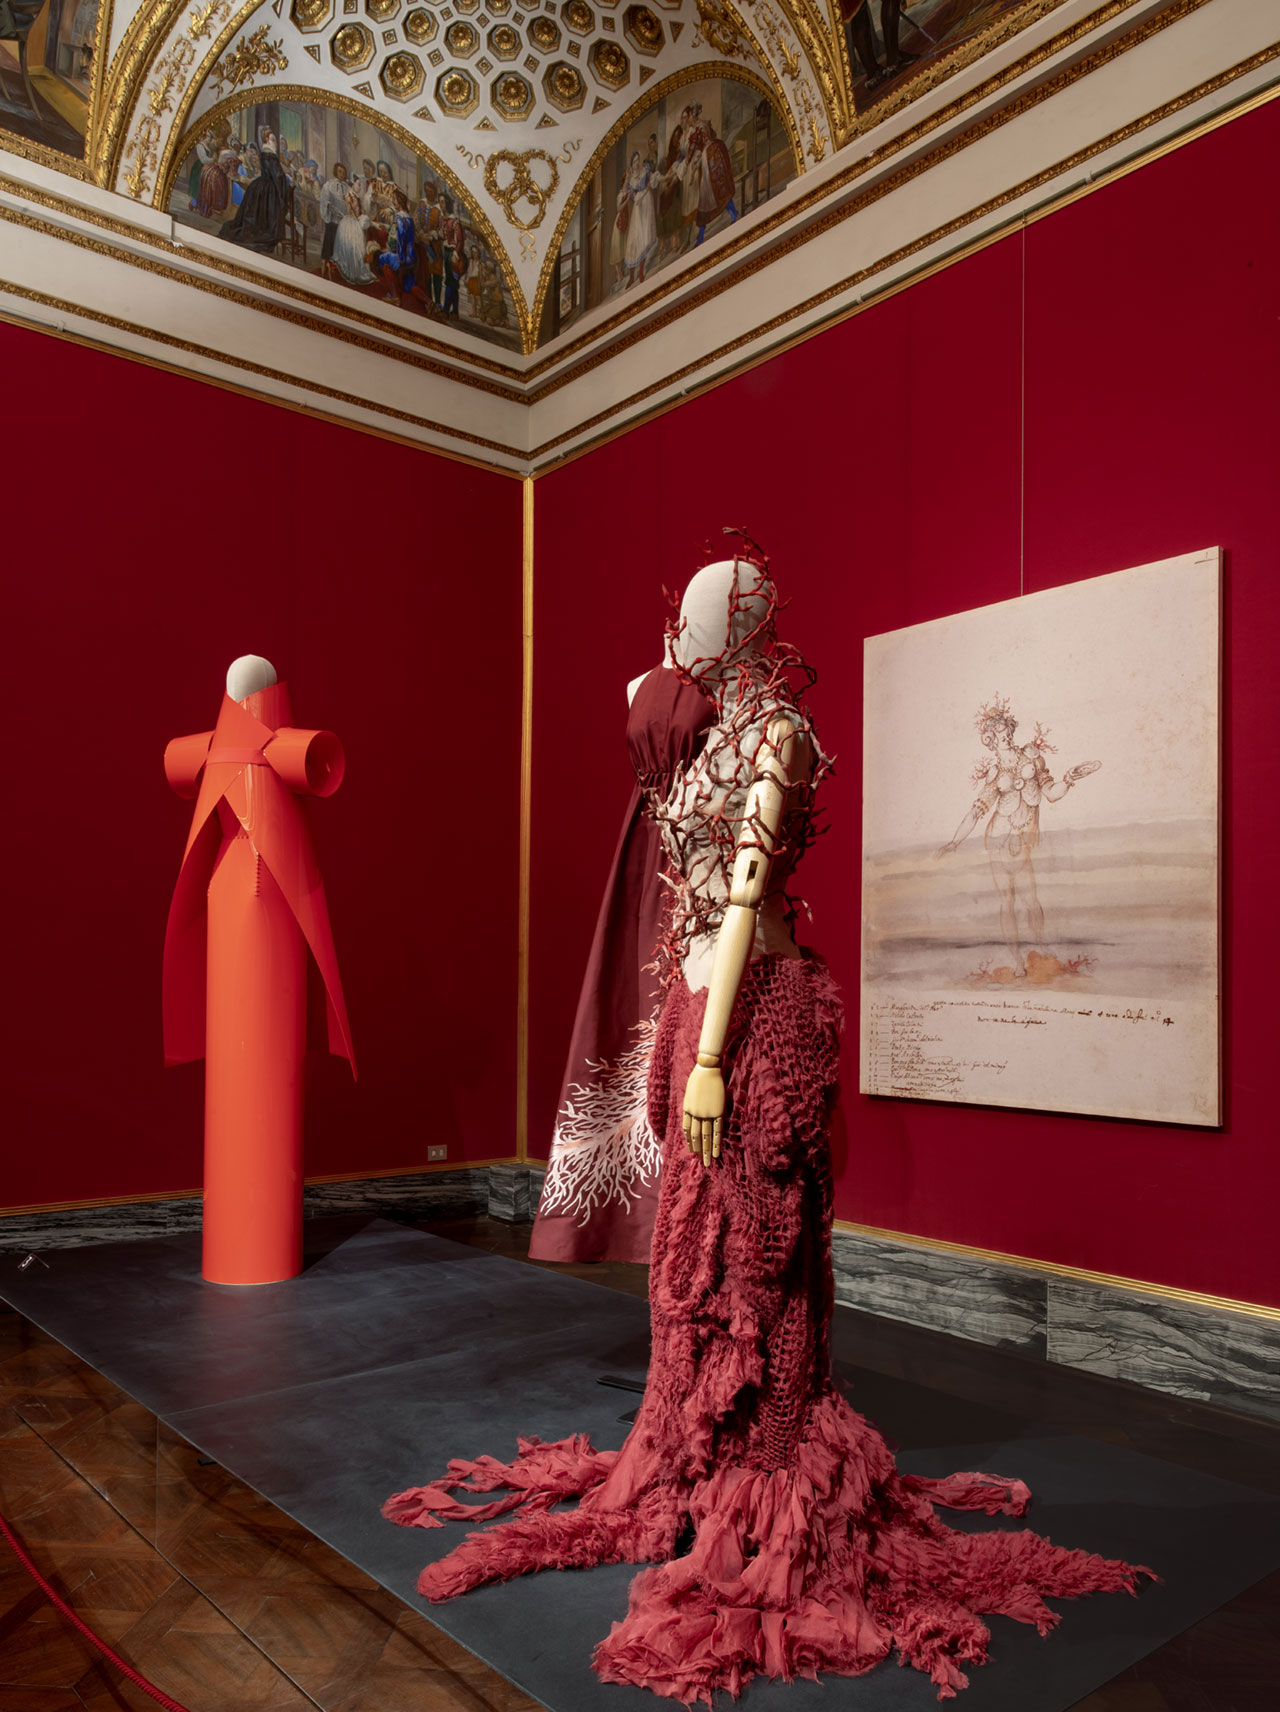 "Exhibition view (from left to right): Gareth Pugh, Dress, Spring/Summer 2018. Valentino, Dress, Spring/Summer 2018. Yiqin Yin, Dress ""Calypso"", Les rives de Lunacy Collection. Fall/Winter 2013-14 Haute Couture. Photo © Antonio Quattrone."